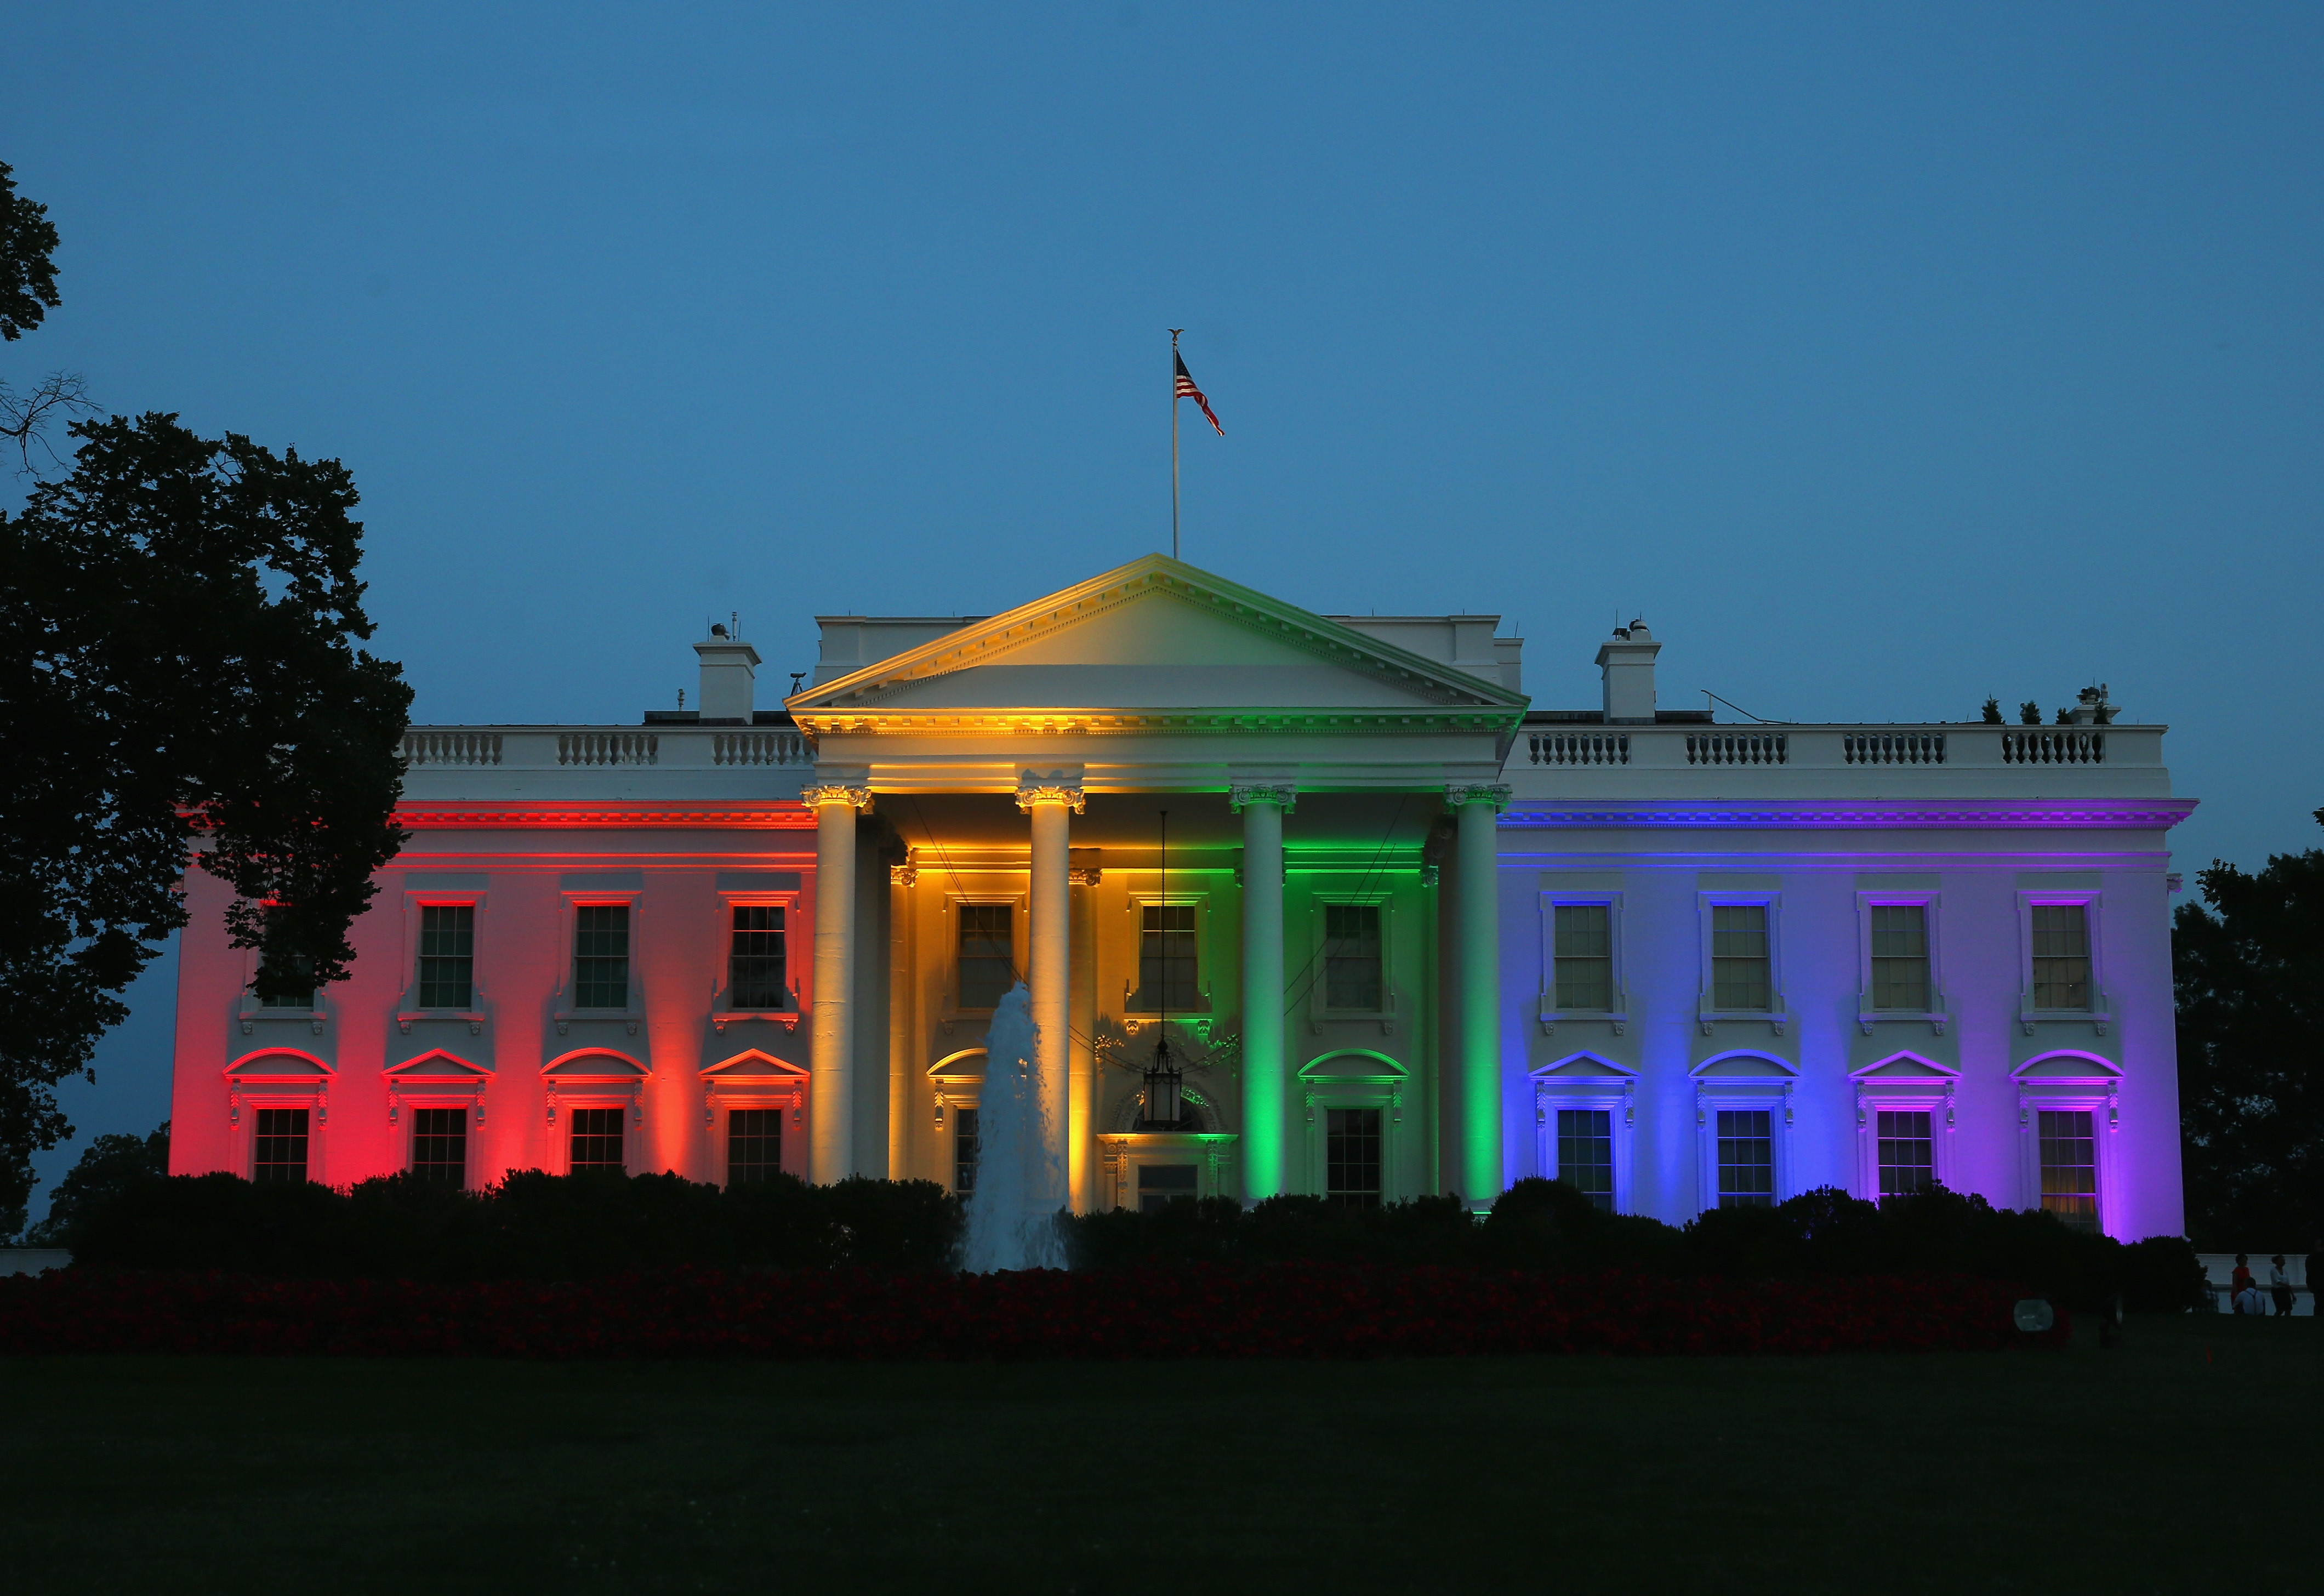 White House clipart indian government On Cool' Rainbow 'That Obama